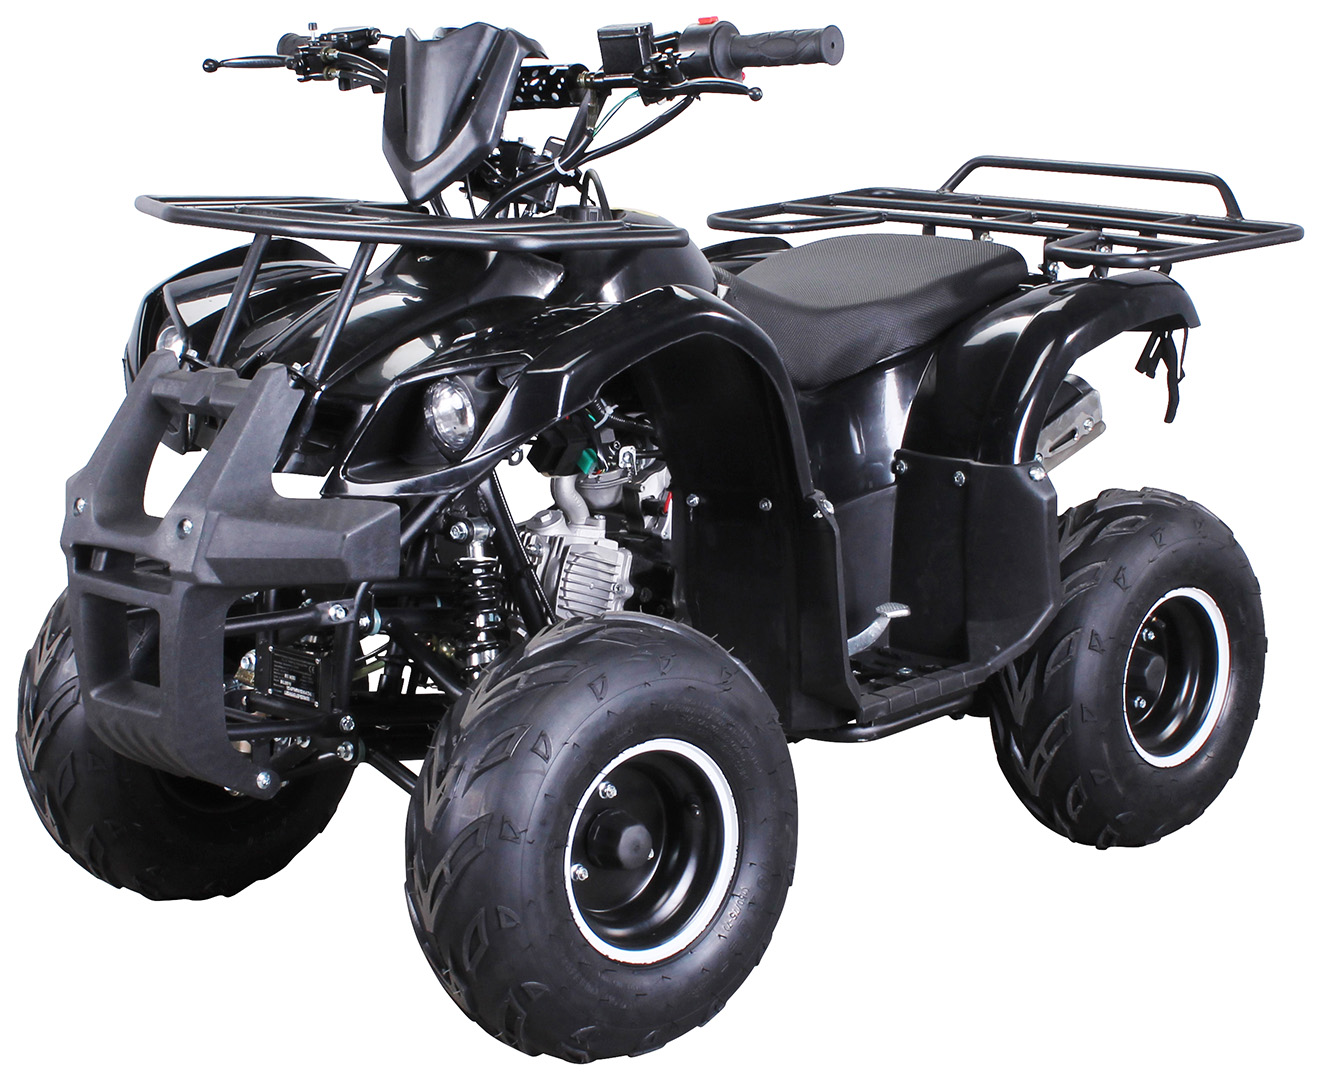 midi kinder pocket quad atv s 8 125 cc farmer benzin. Black Bedroom Furniture Sets. Home Design Ideas